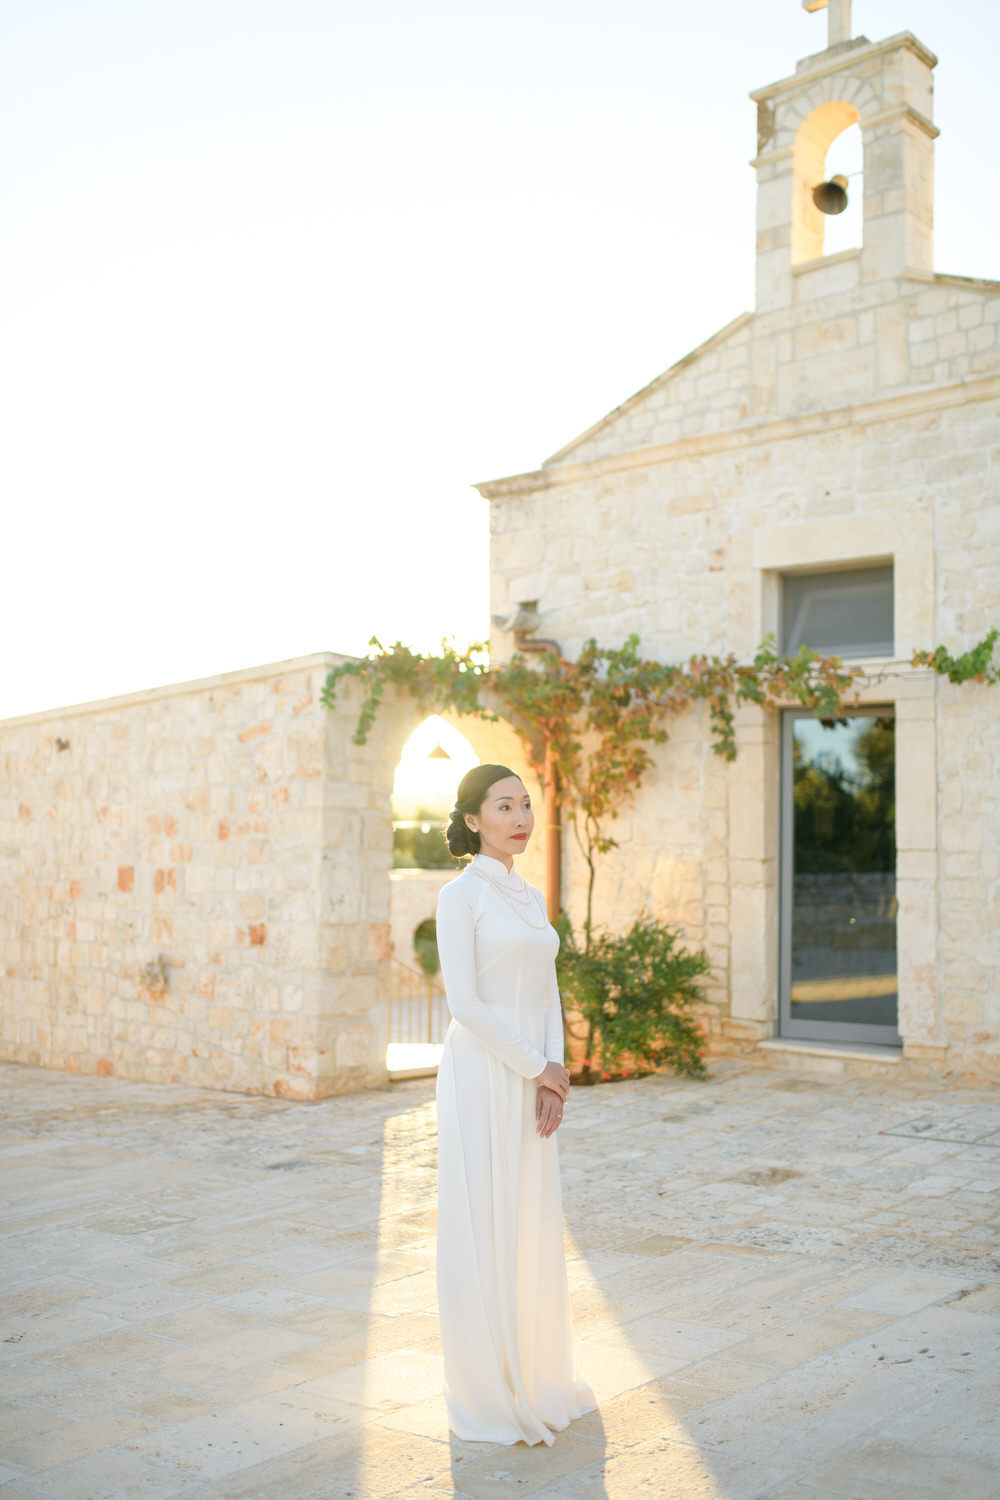 engagement-in-ostuni-©bottega53-4.jpg